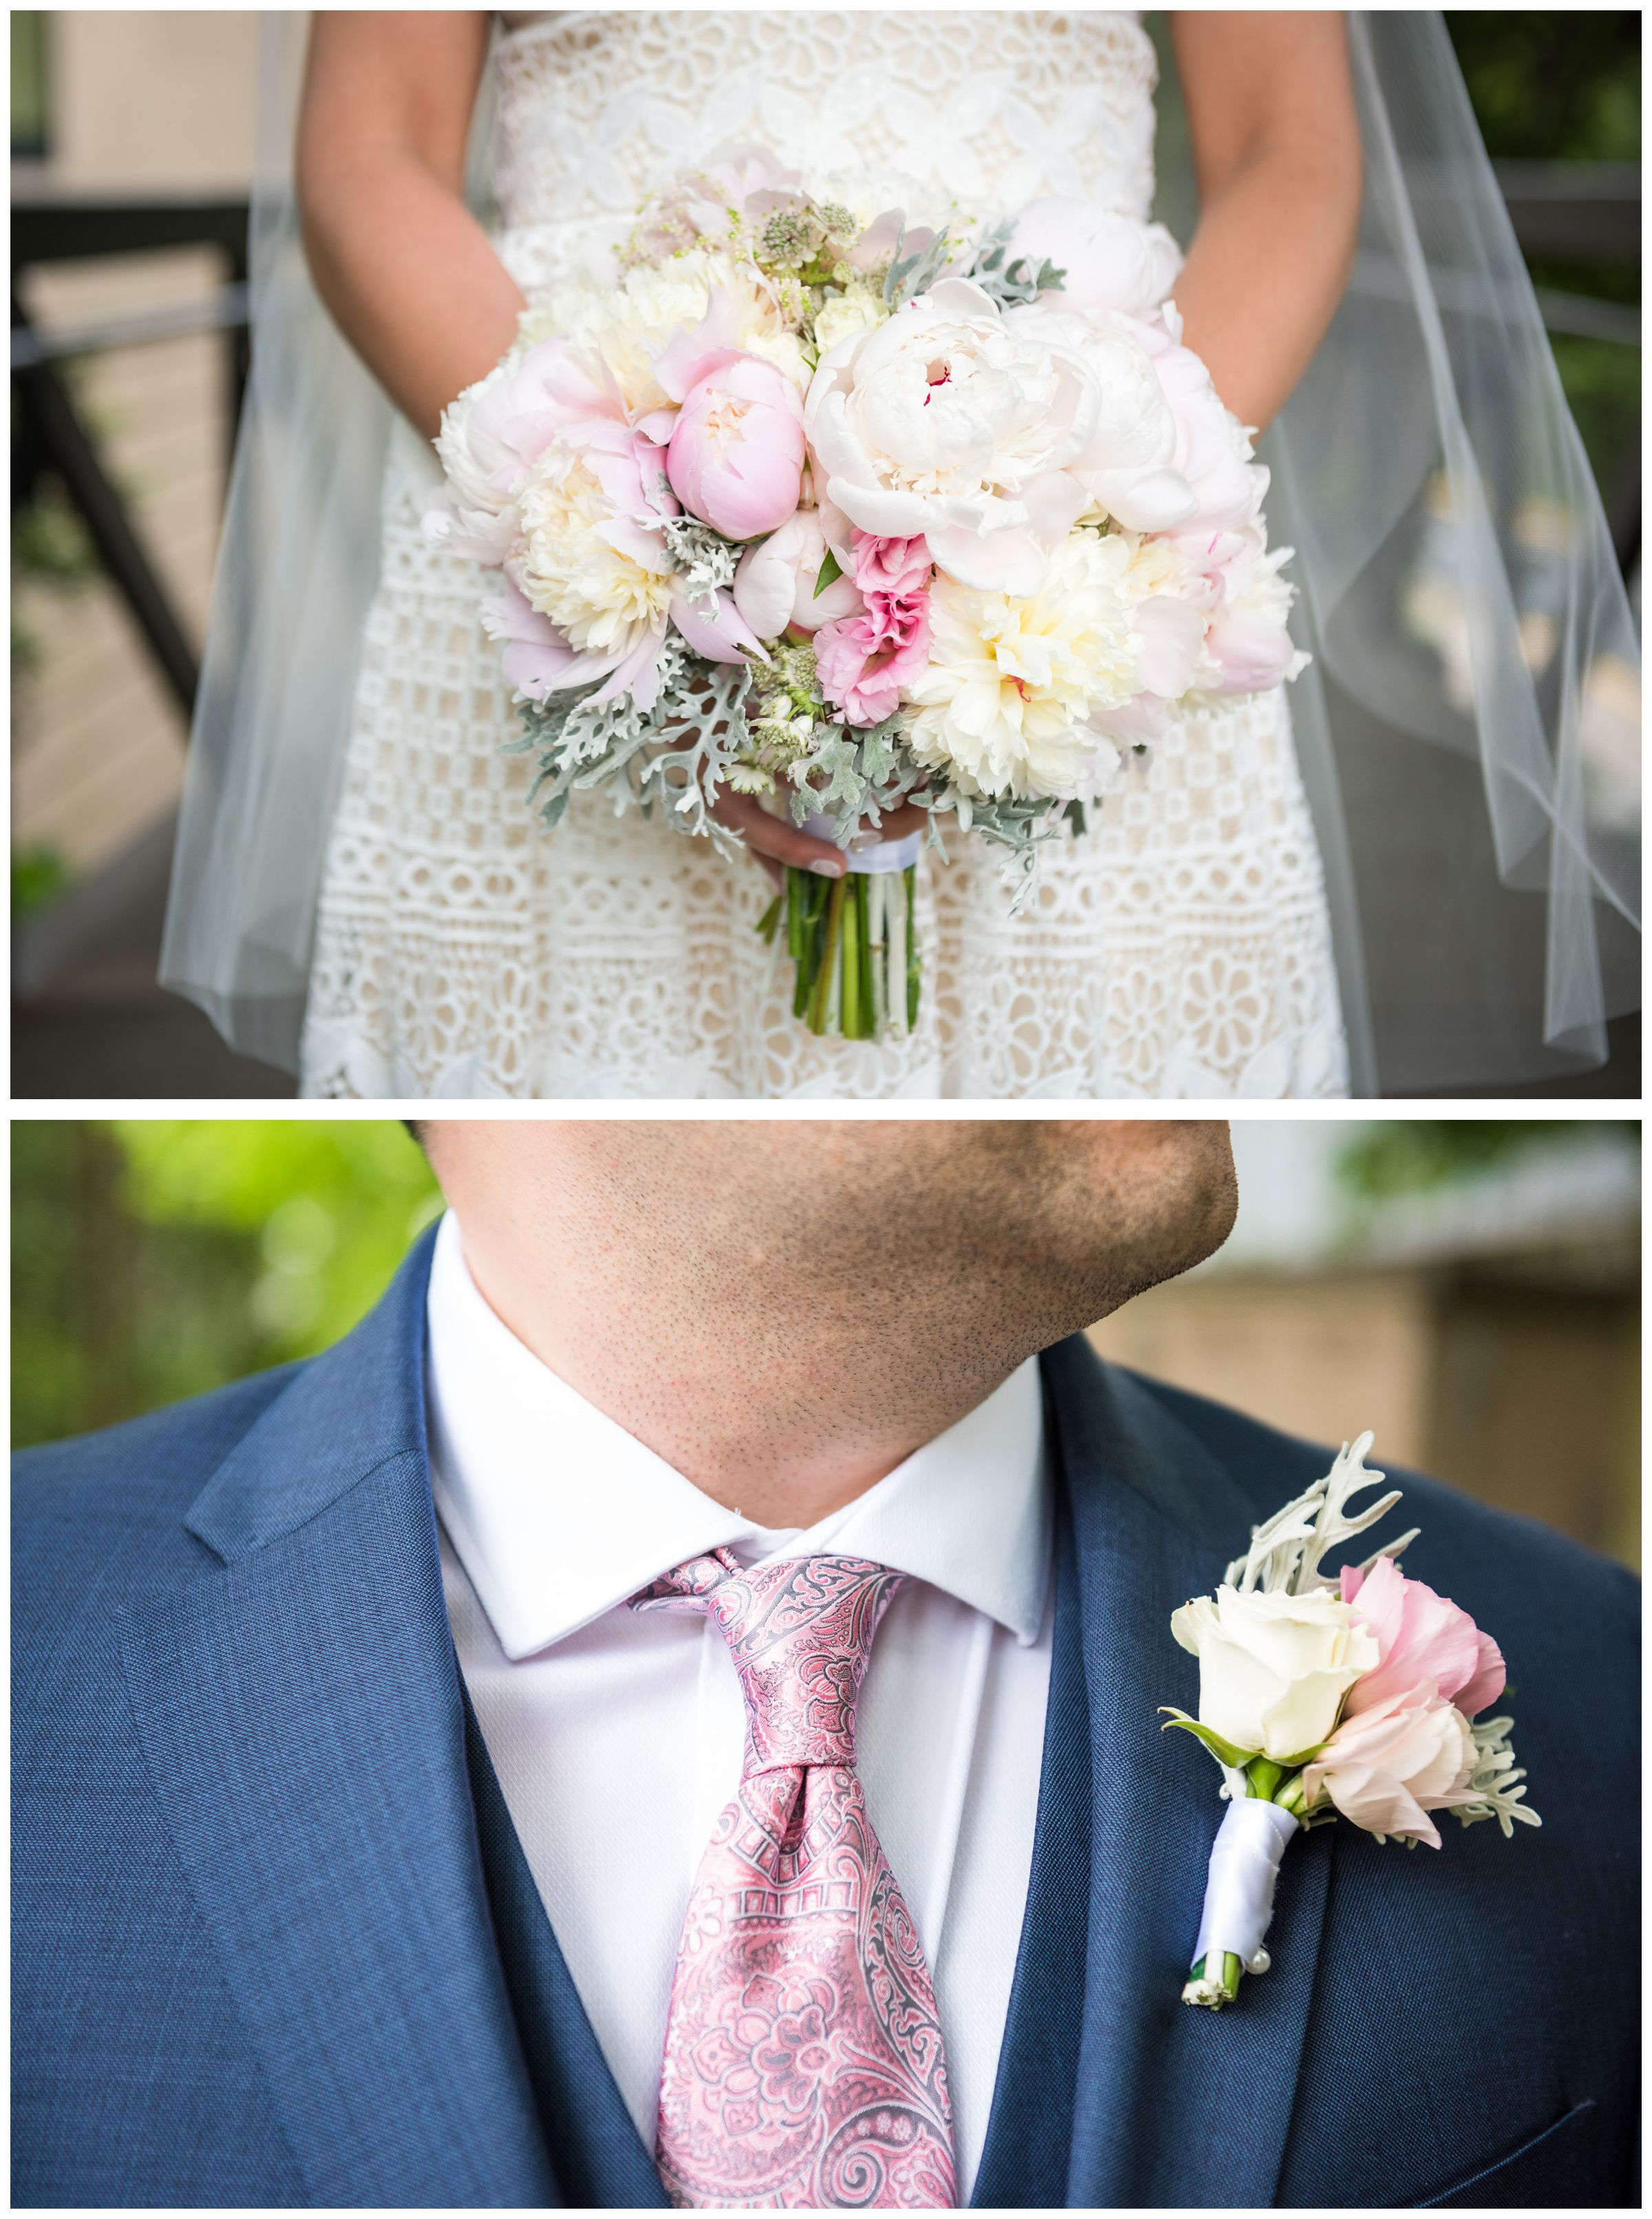 navy and blush wedding accessories including navy Tommy Hilfiger suit, blush tie, and blush peony bouquet